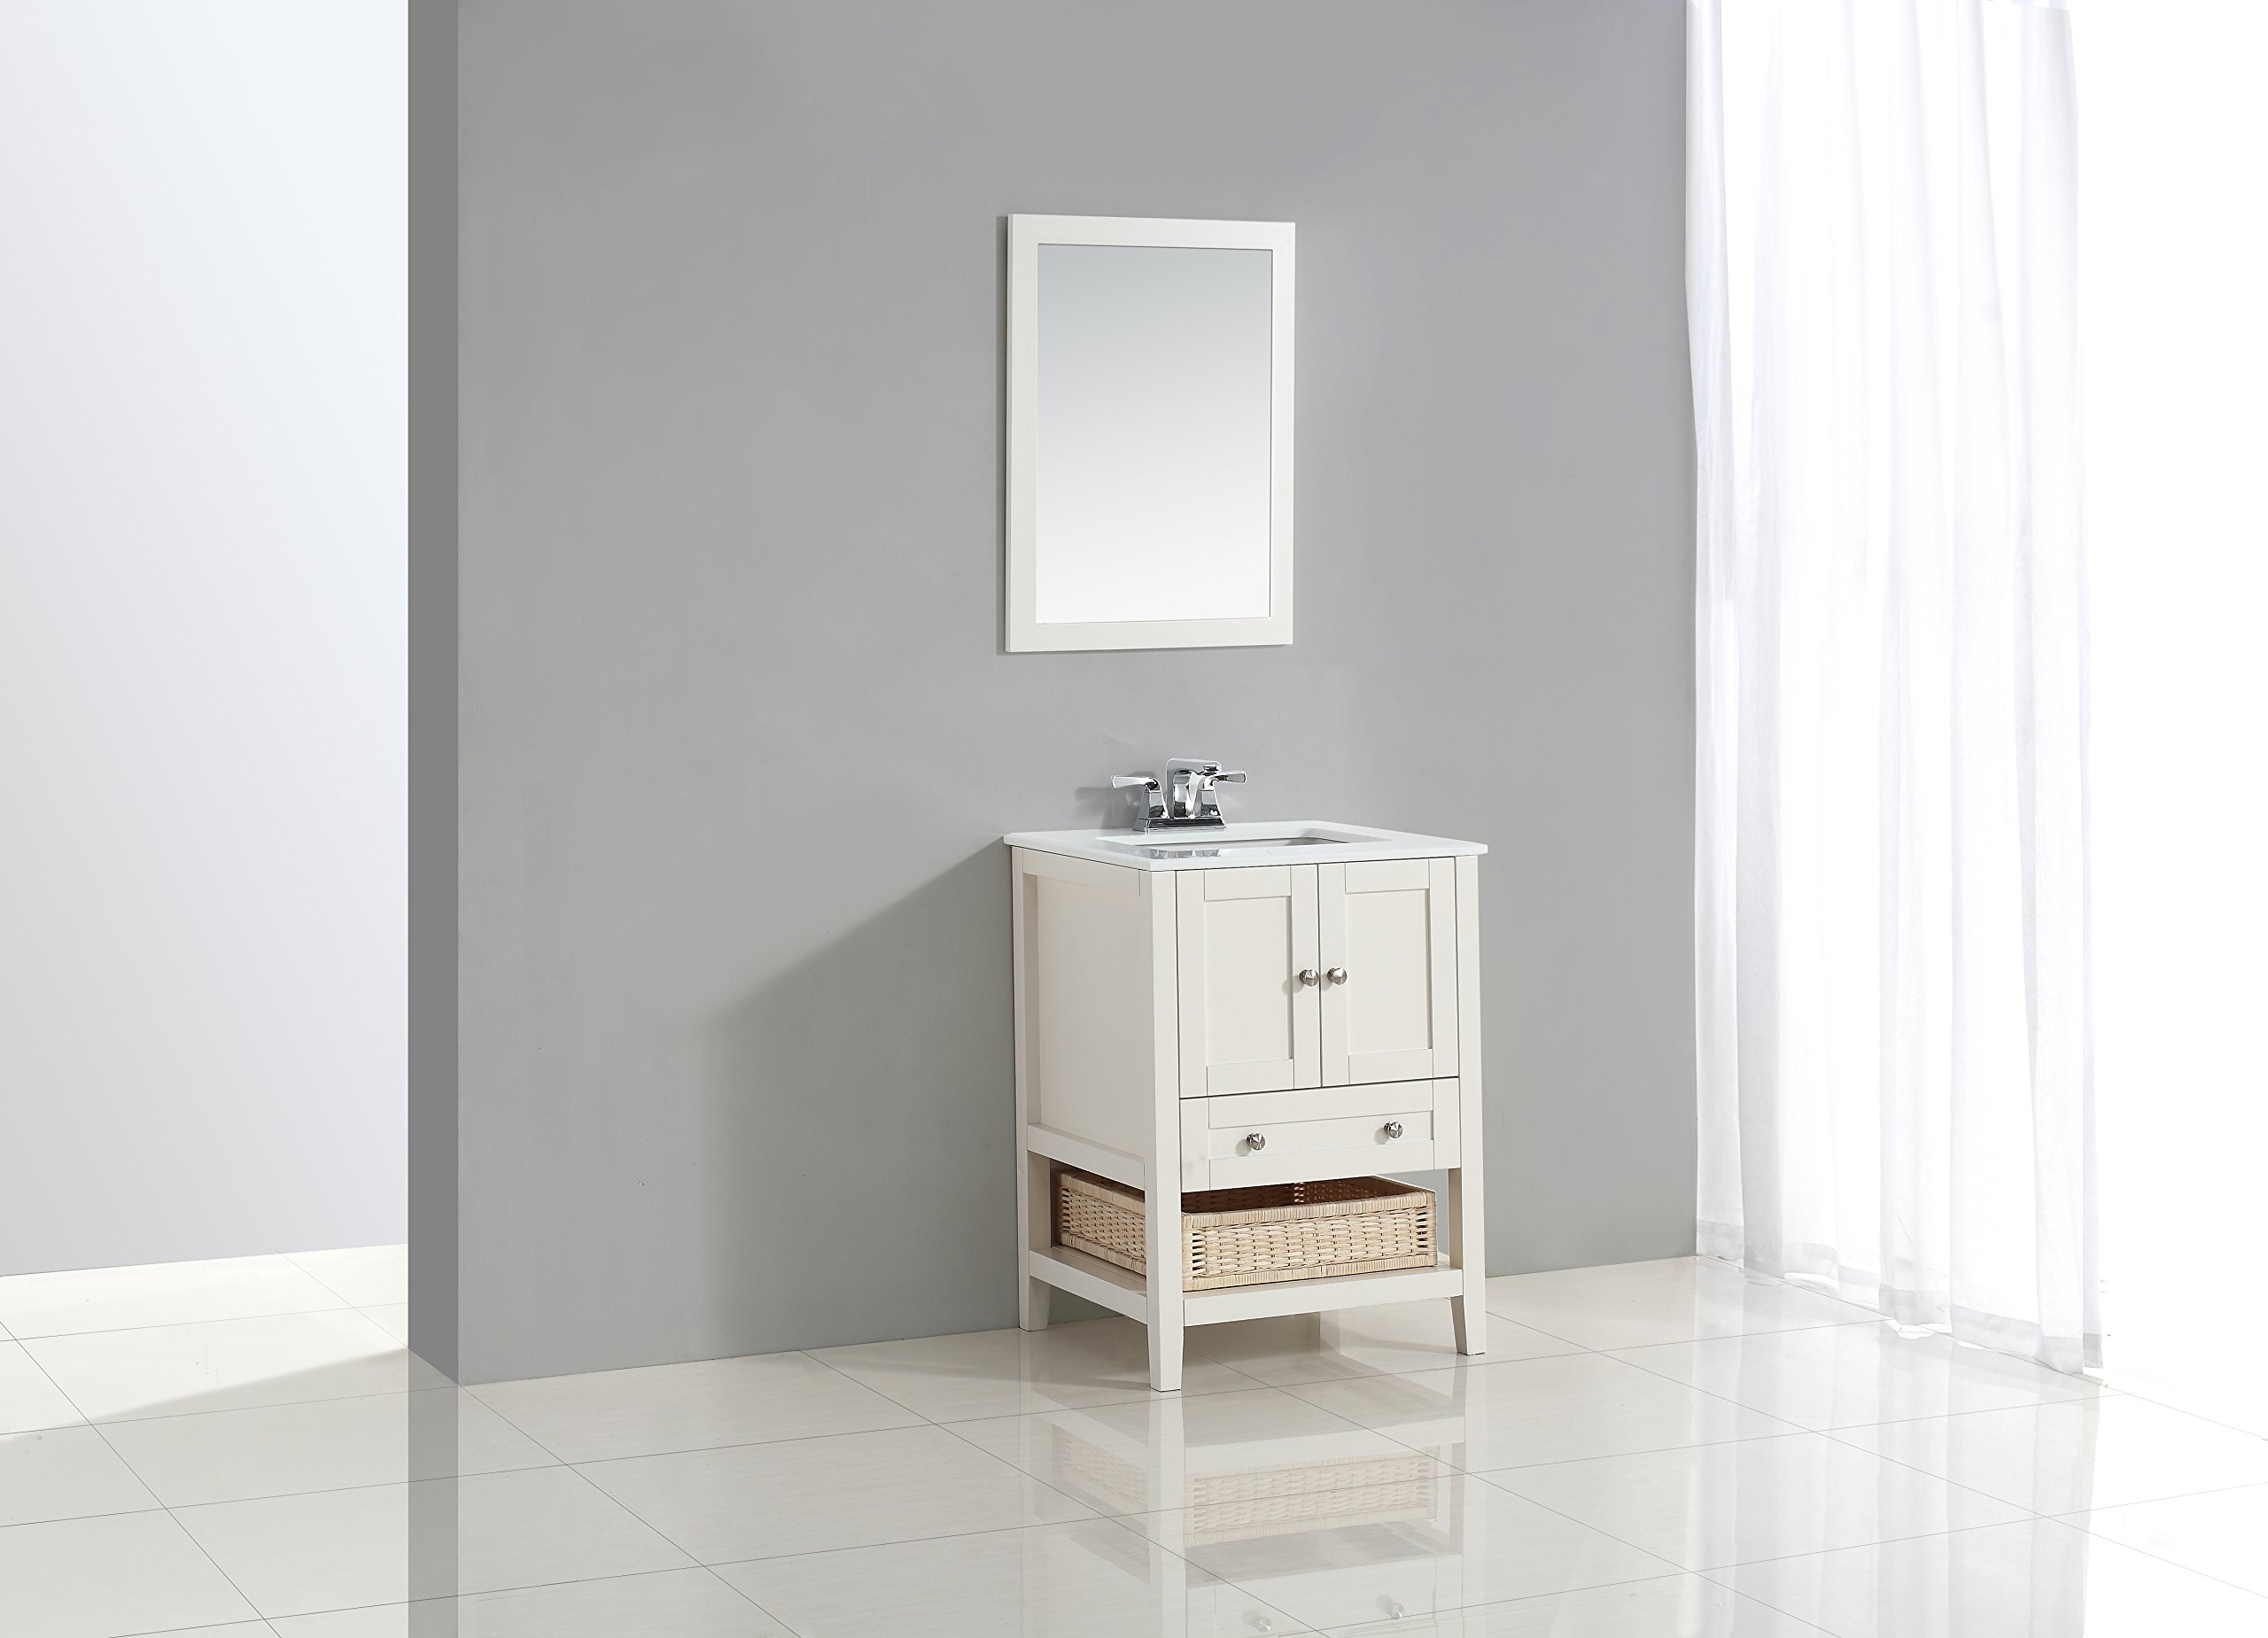 "Simpli Home 4AXCVCCW-24 Cape Cod 24 inch Contemporary Bath Vanity in Soft White with White Engineered Quartz Marble Top - Single sink bathroom vanity with two doors, one bottom drawer and open storage area with basket, hardwood frame and legs Vanity color: Off White with Brushed Nickel knobs Overall Vanity Size with Top: 25"" w x 21.5"" d x 34.5"" h - bathroom-vanities, bathroom-fixtures-hardware, bathroom - 71xAsdF1HDL -"